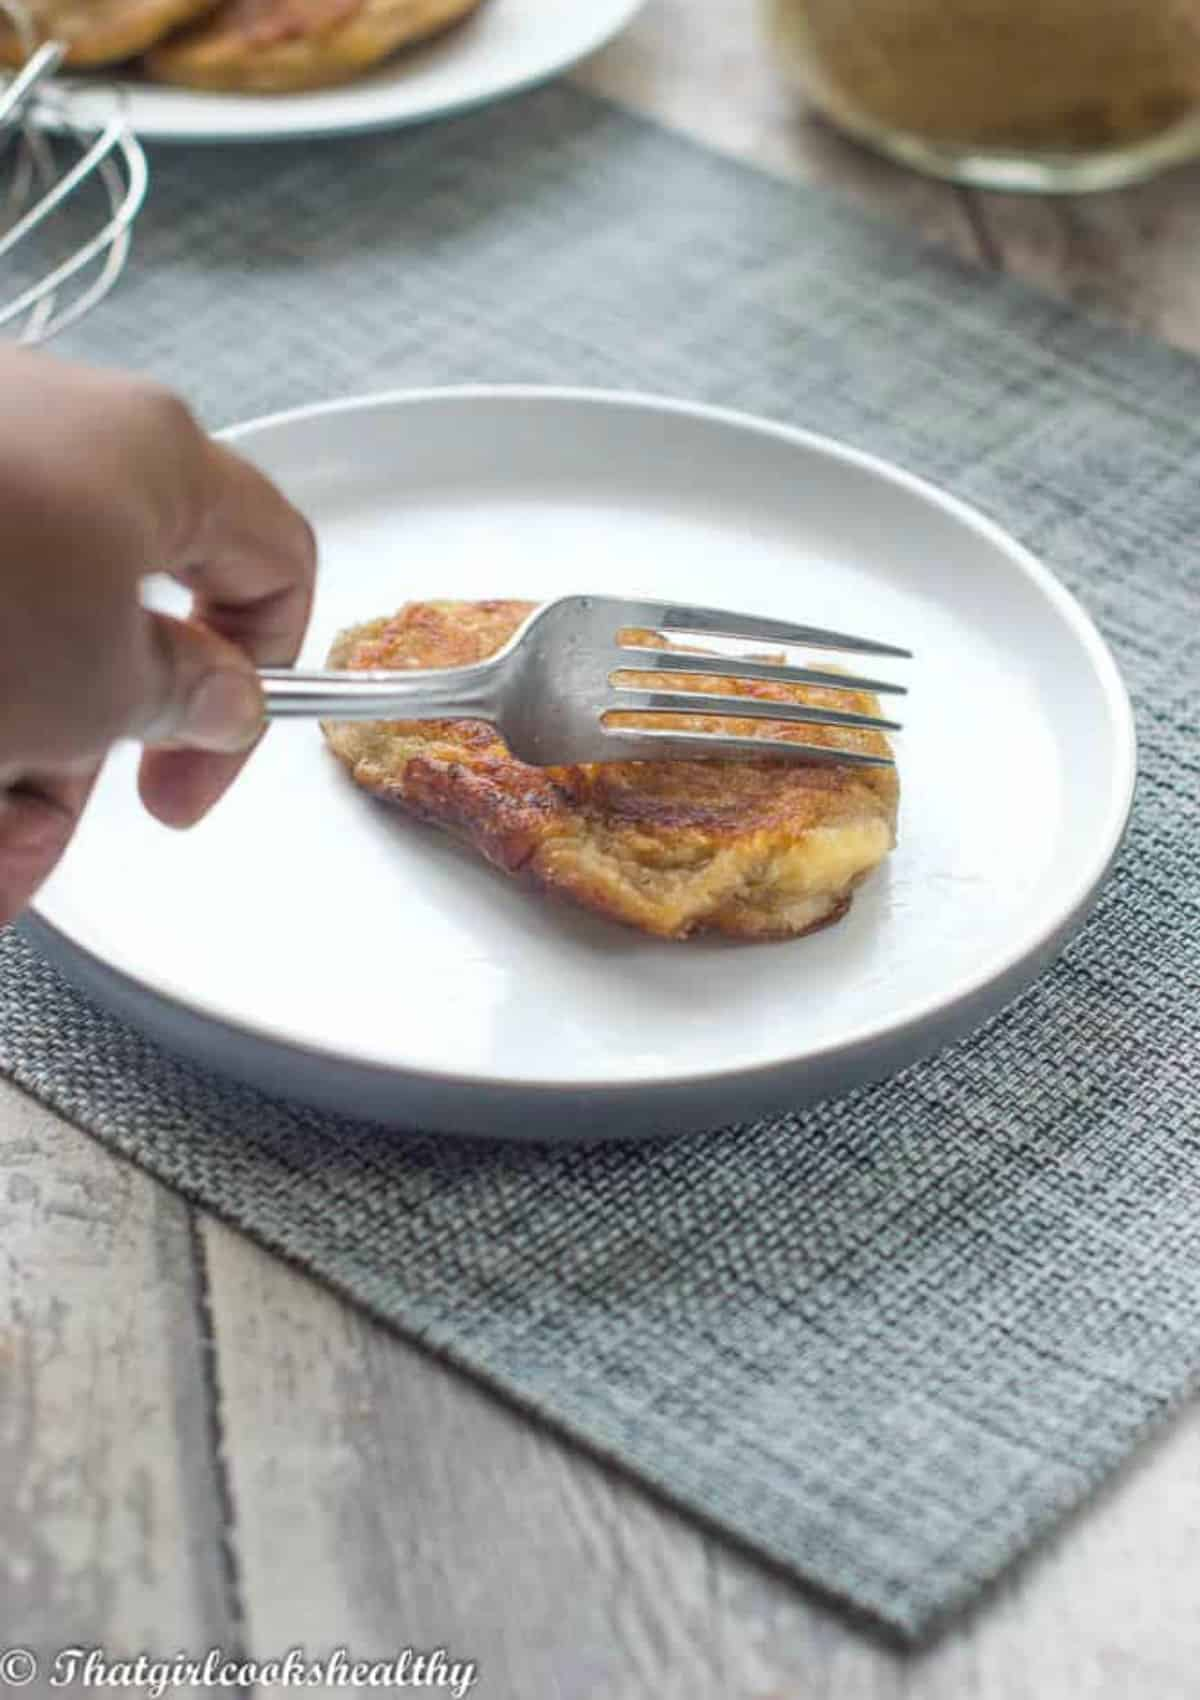 Using a fork to cut the fritters